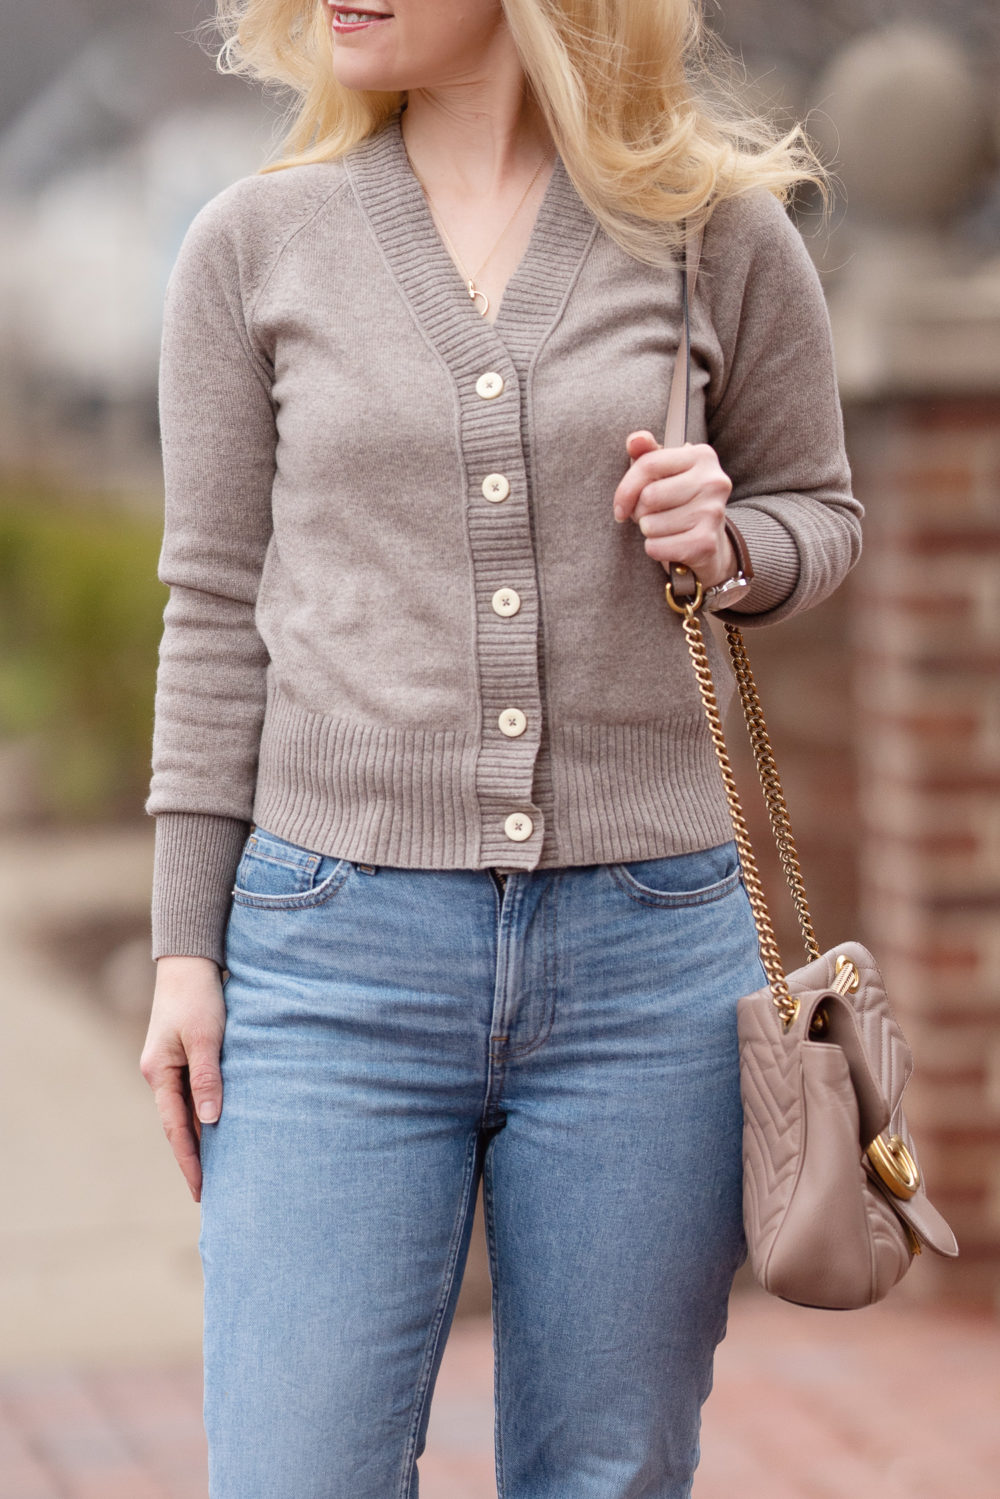 Petite Fashion Blog | Everlane ReCashmere Crop Cardigan | Everlane Kick Crop Jeans | Everlane Sale